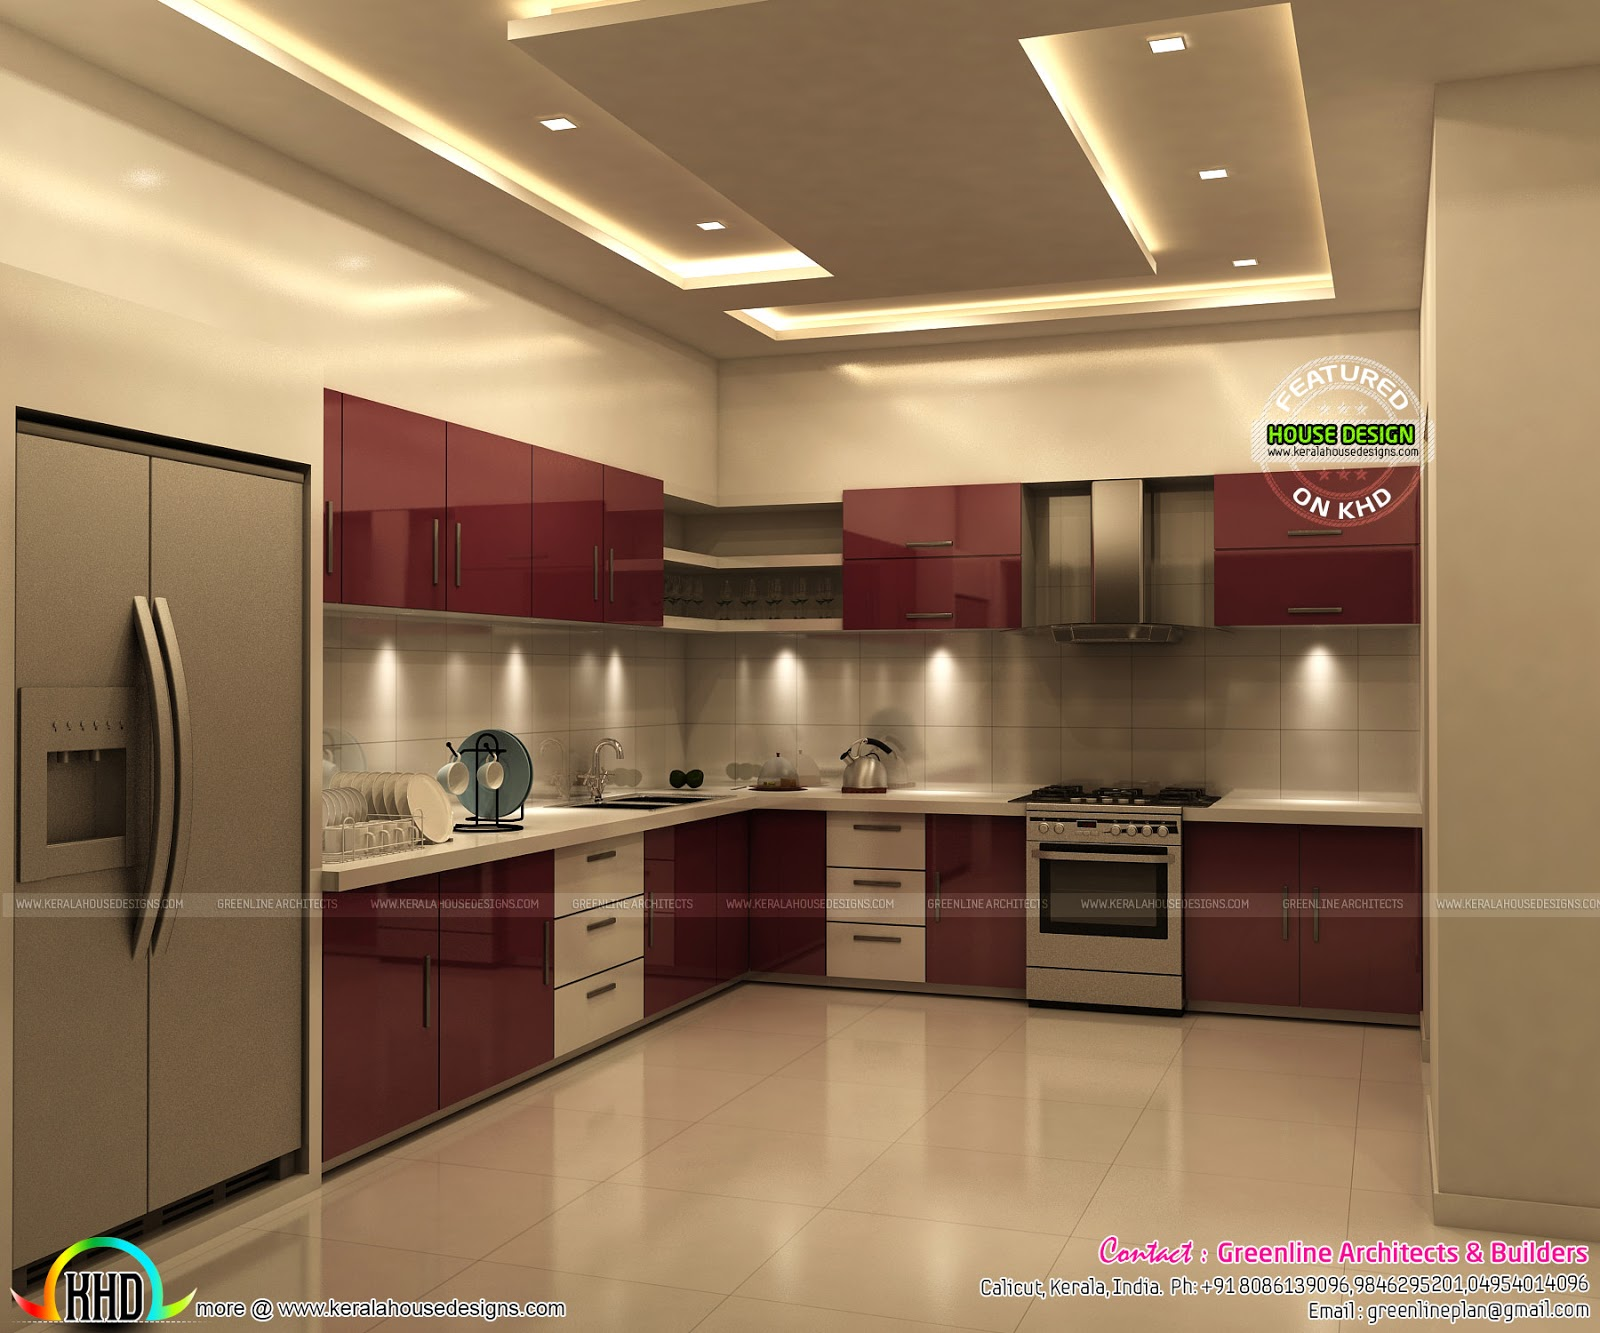 Superb kitchen and bedroom interiors kerala home design for Interior designs of a house